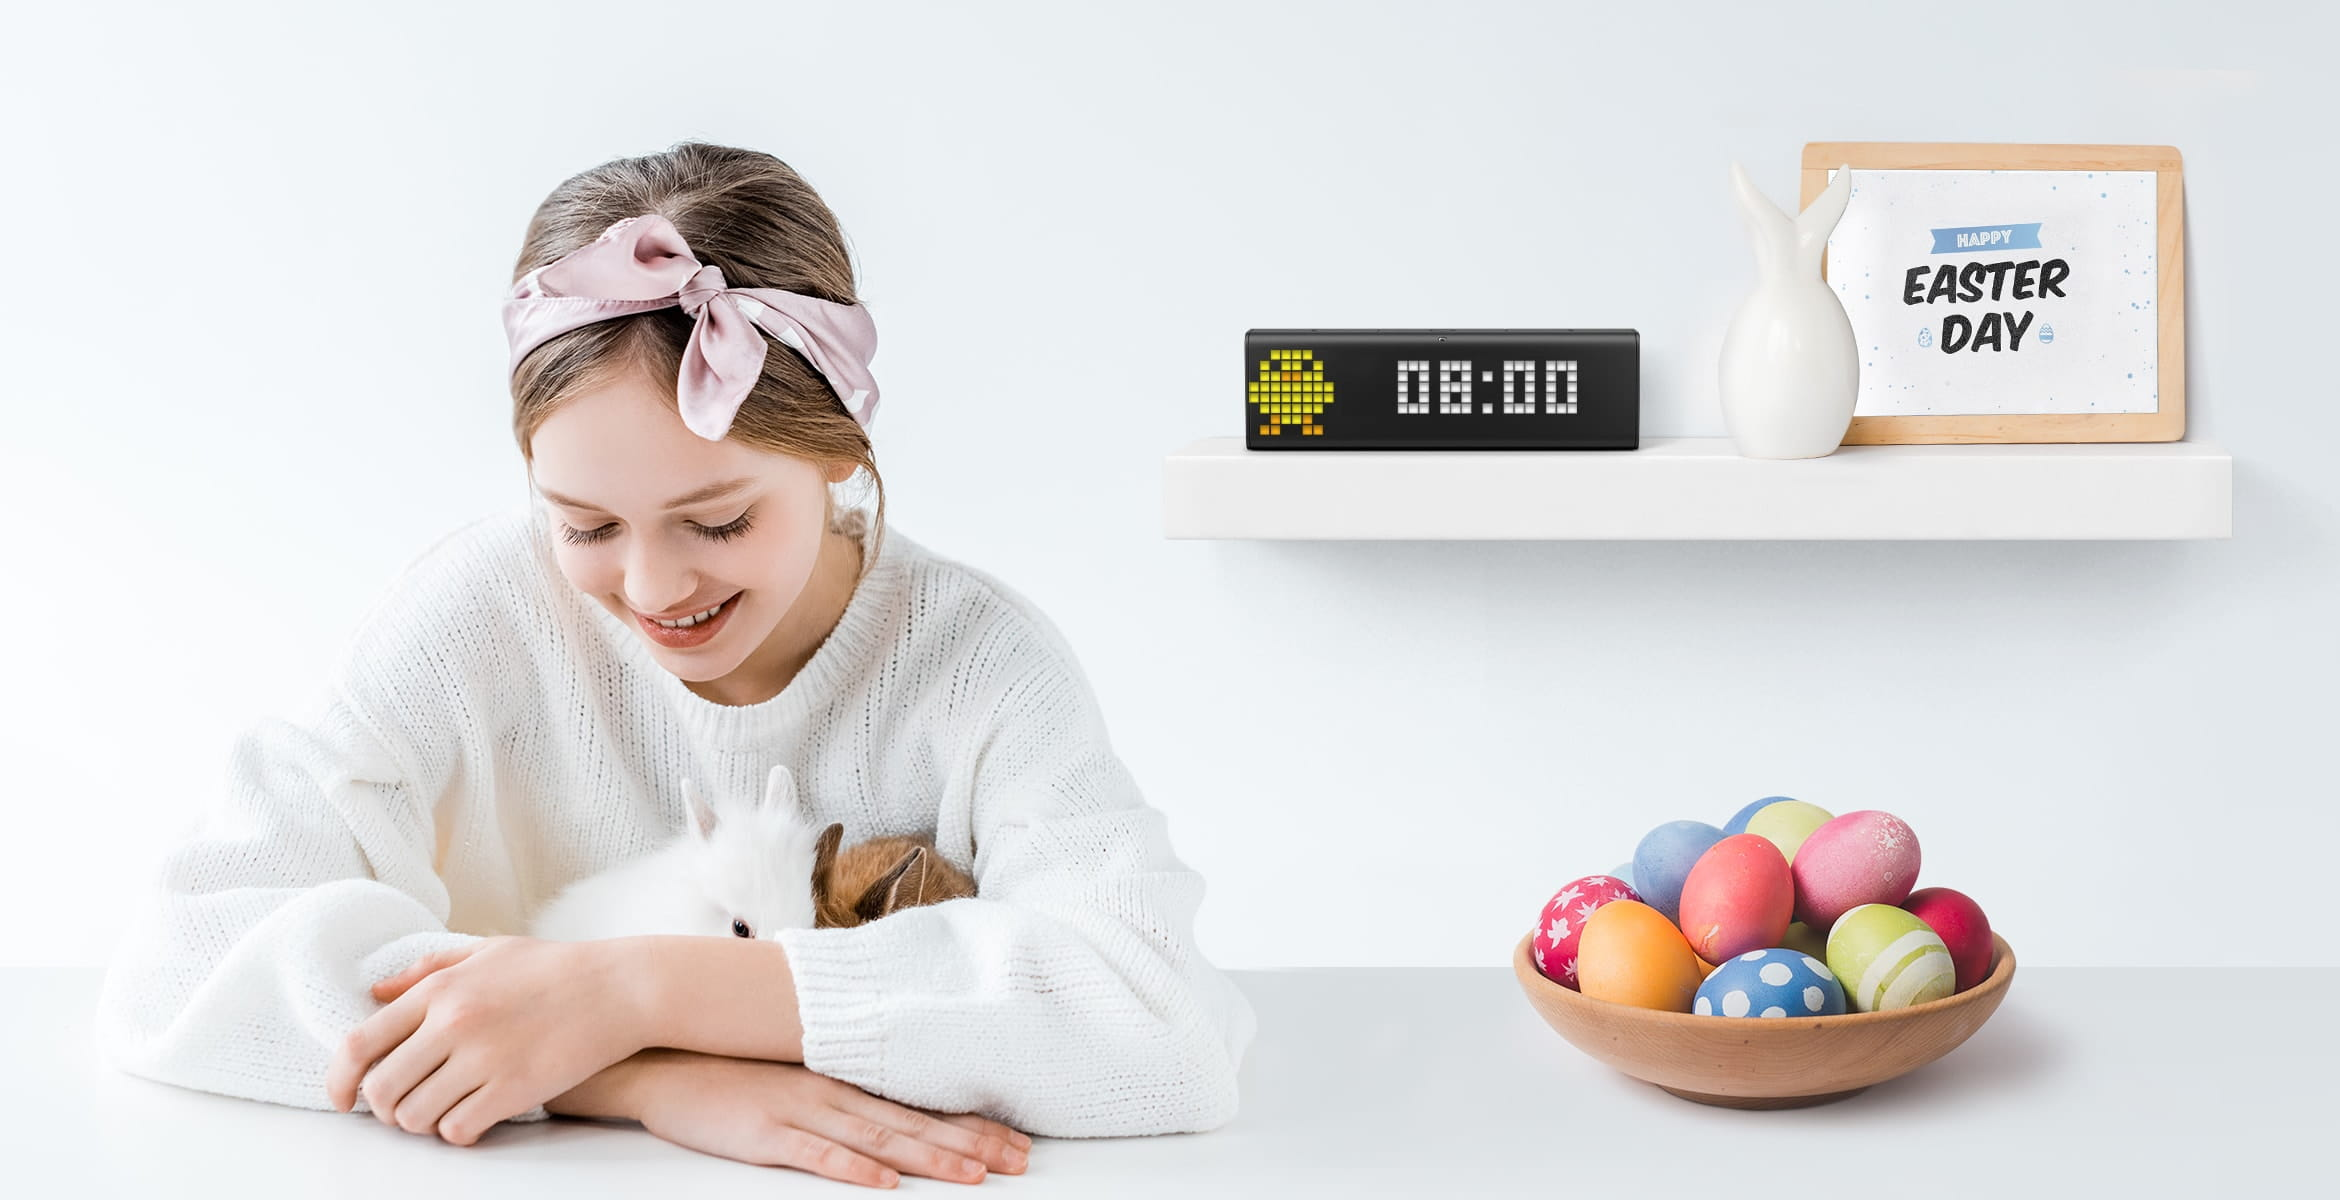 LaMetric Time smart clock shows time and a festive clock face, standing in a room with Easter Day decorations